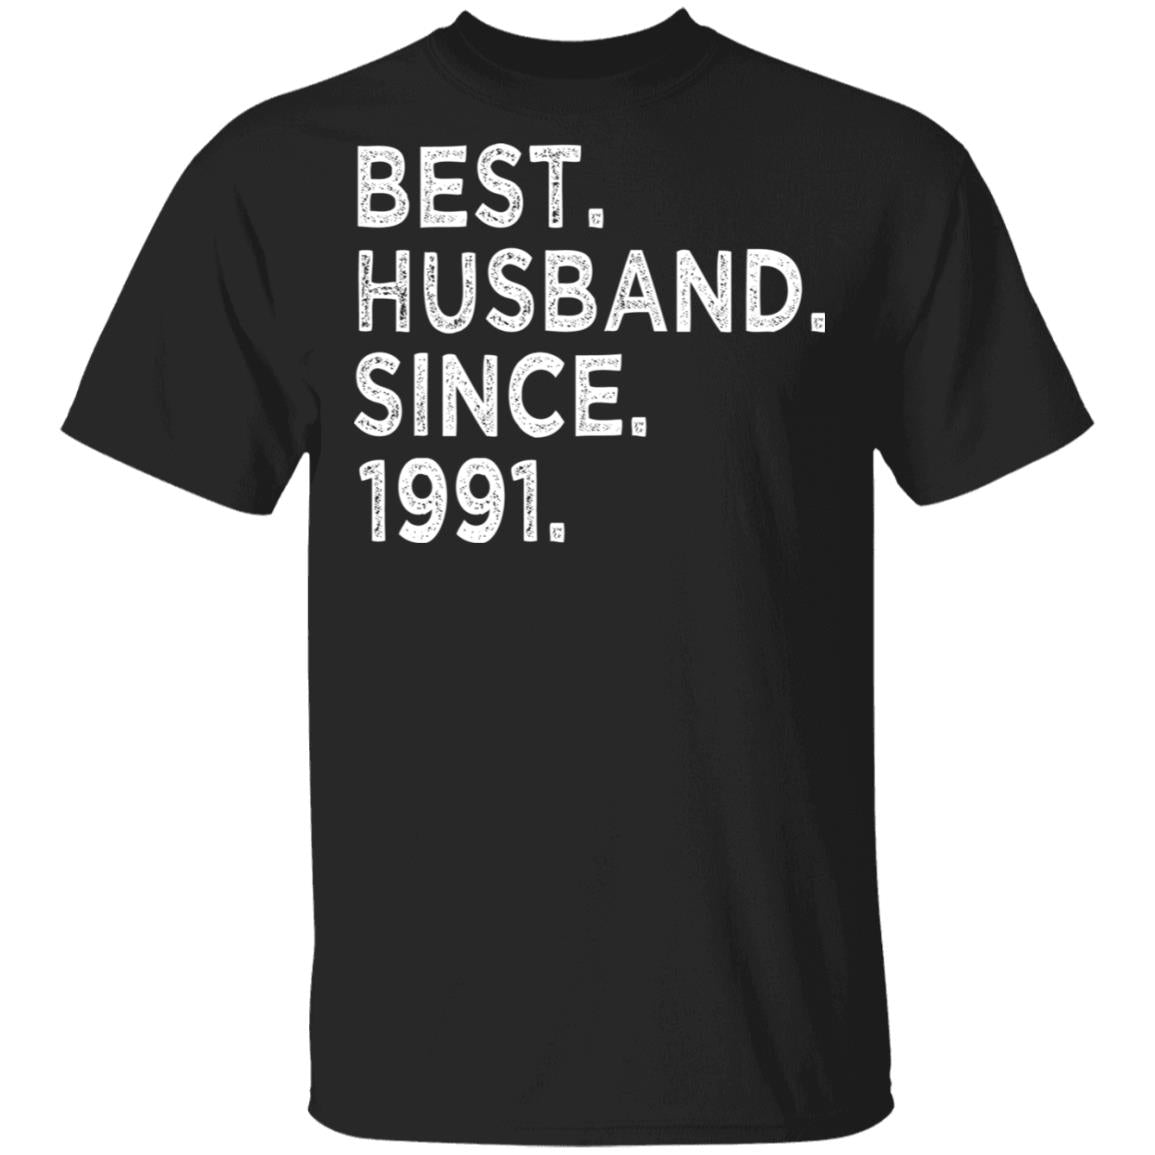 Best-husband-since-1991-wedding-anniversary-t-shirt 99promocode